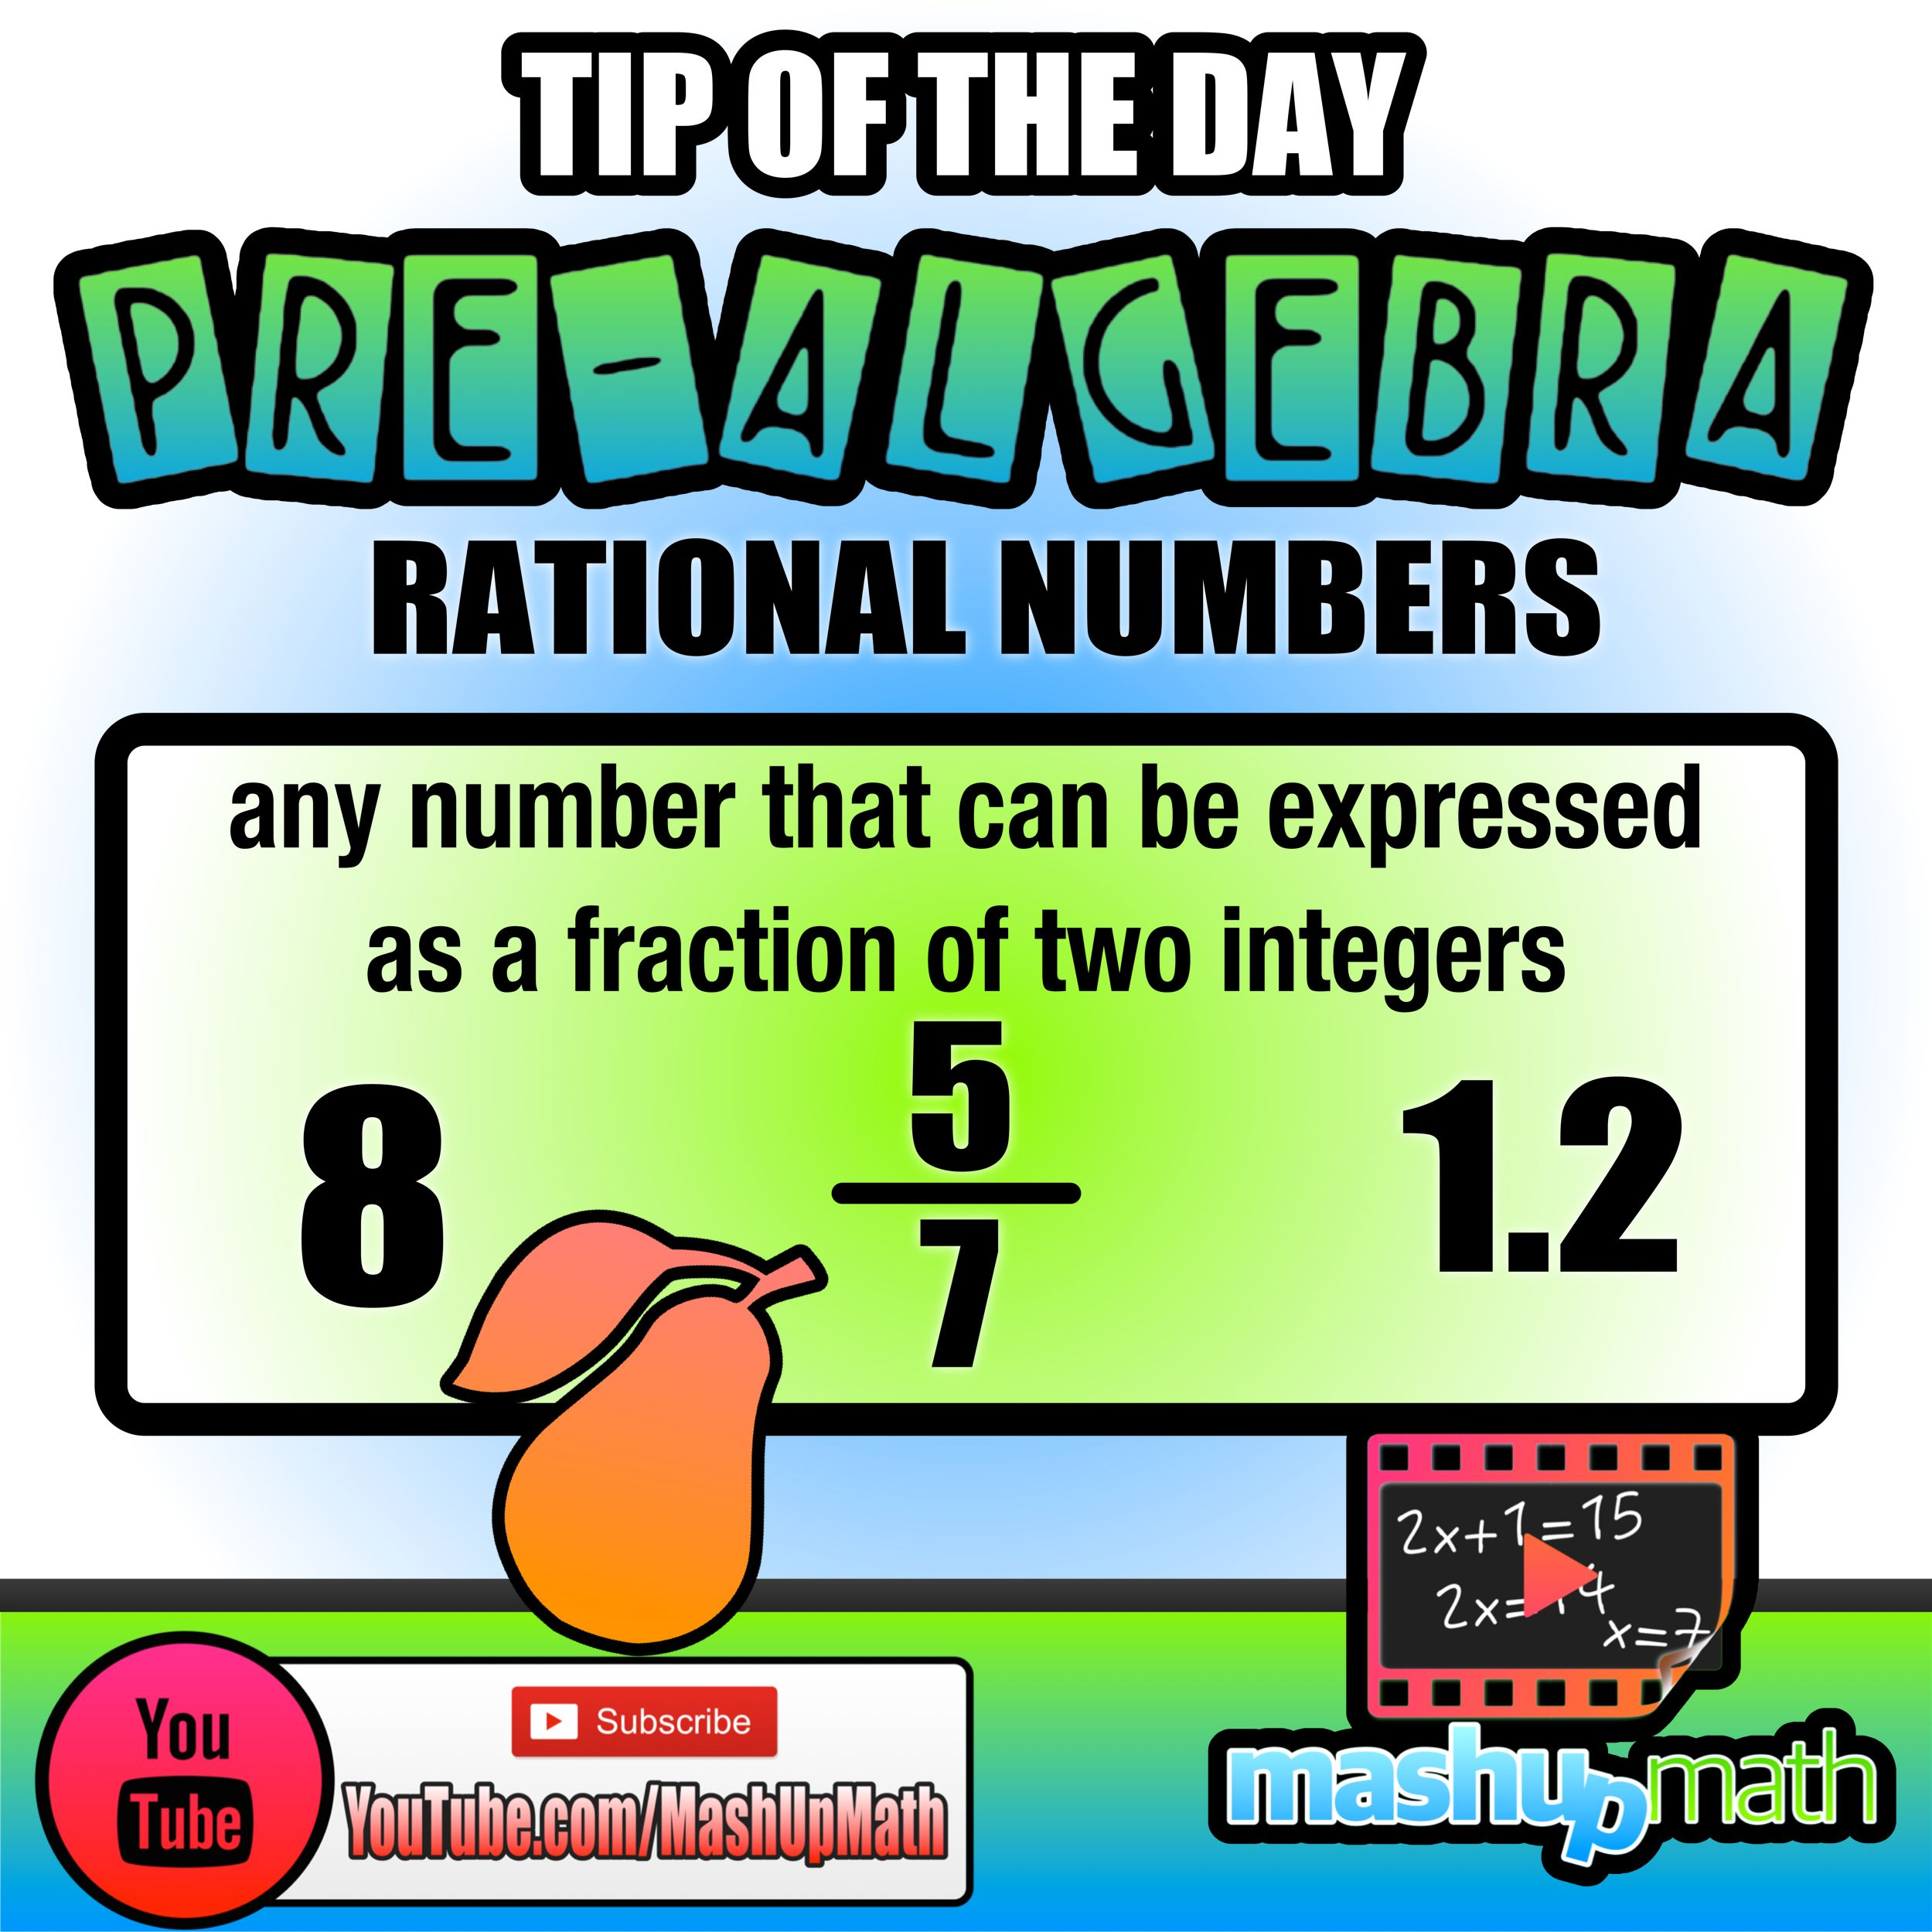 For more math content, check out our animated lessons at YouTube.com ...